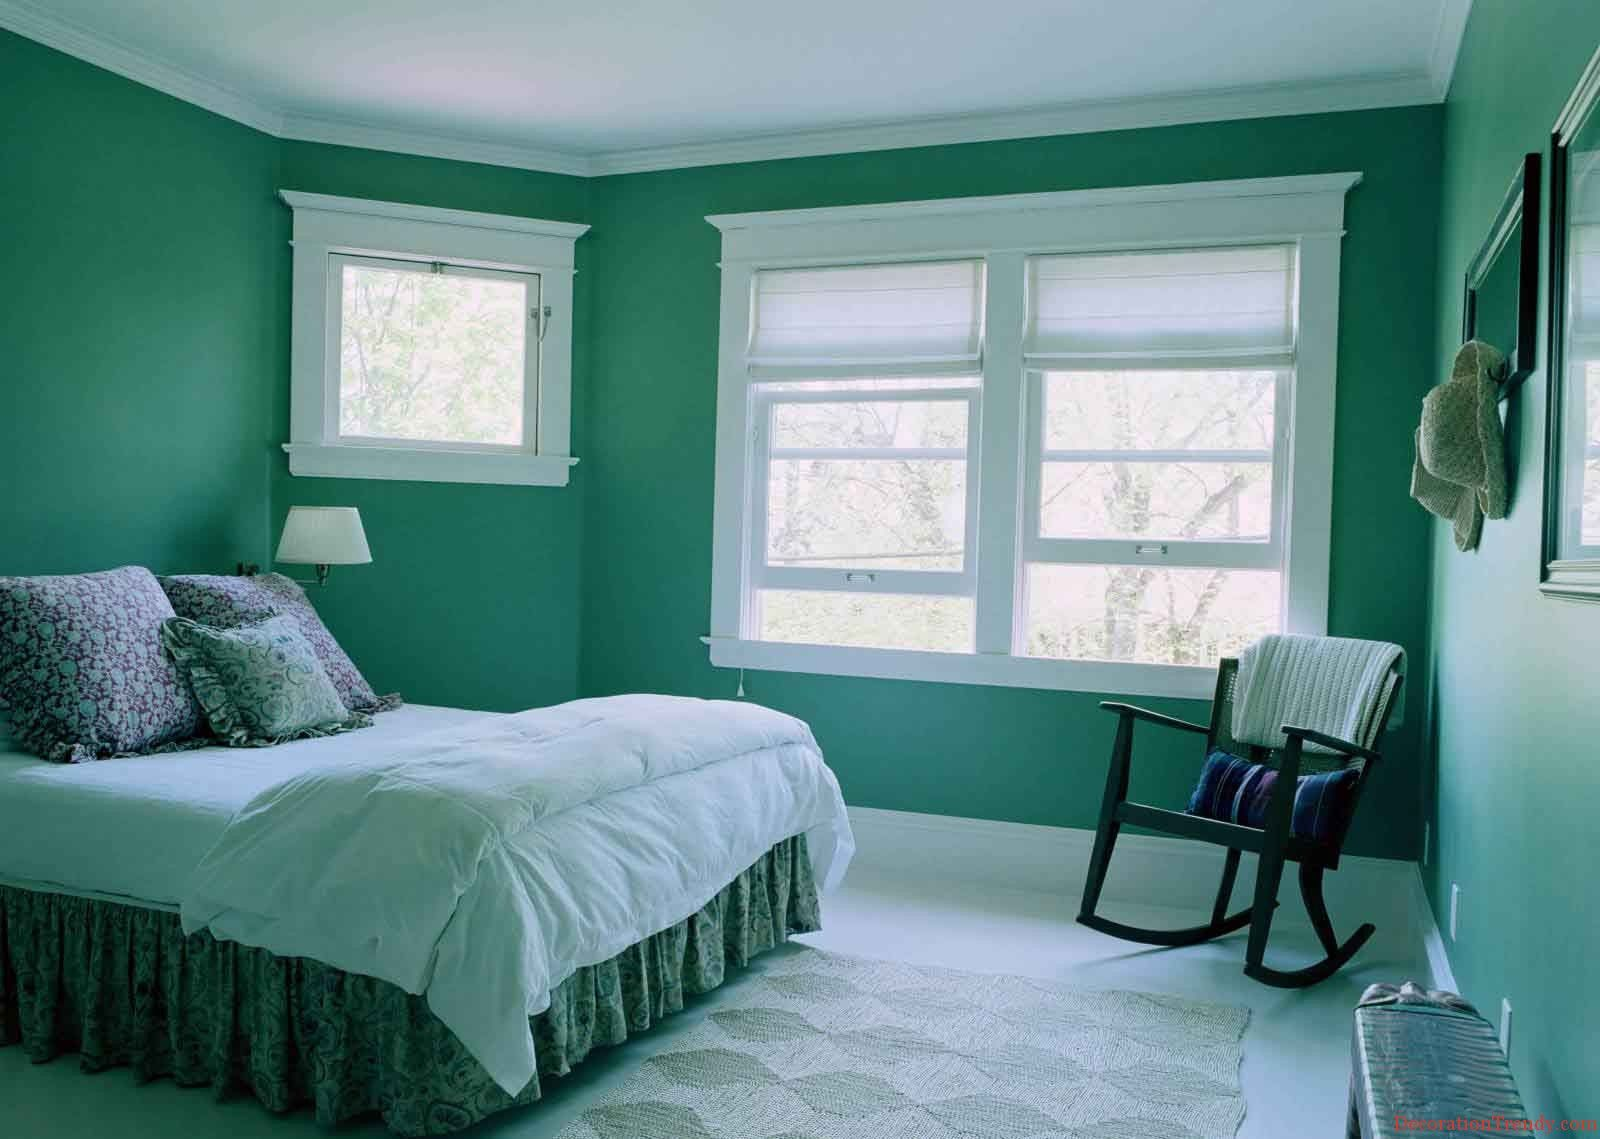 Master bedroom color design - Wall Color Combination Design Ideas And Photos Get Creative Wall Painting Ideas Designs For